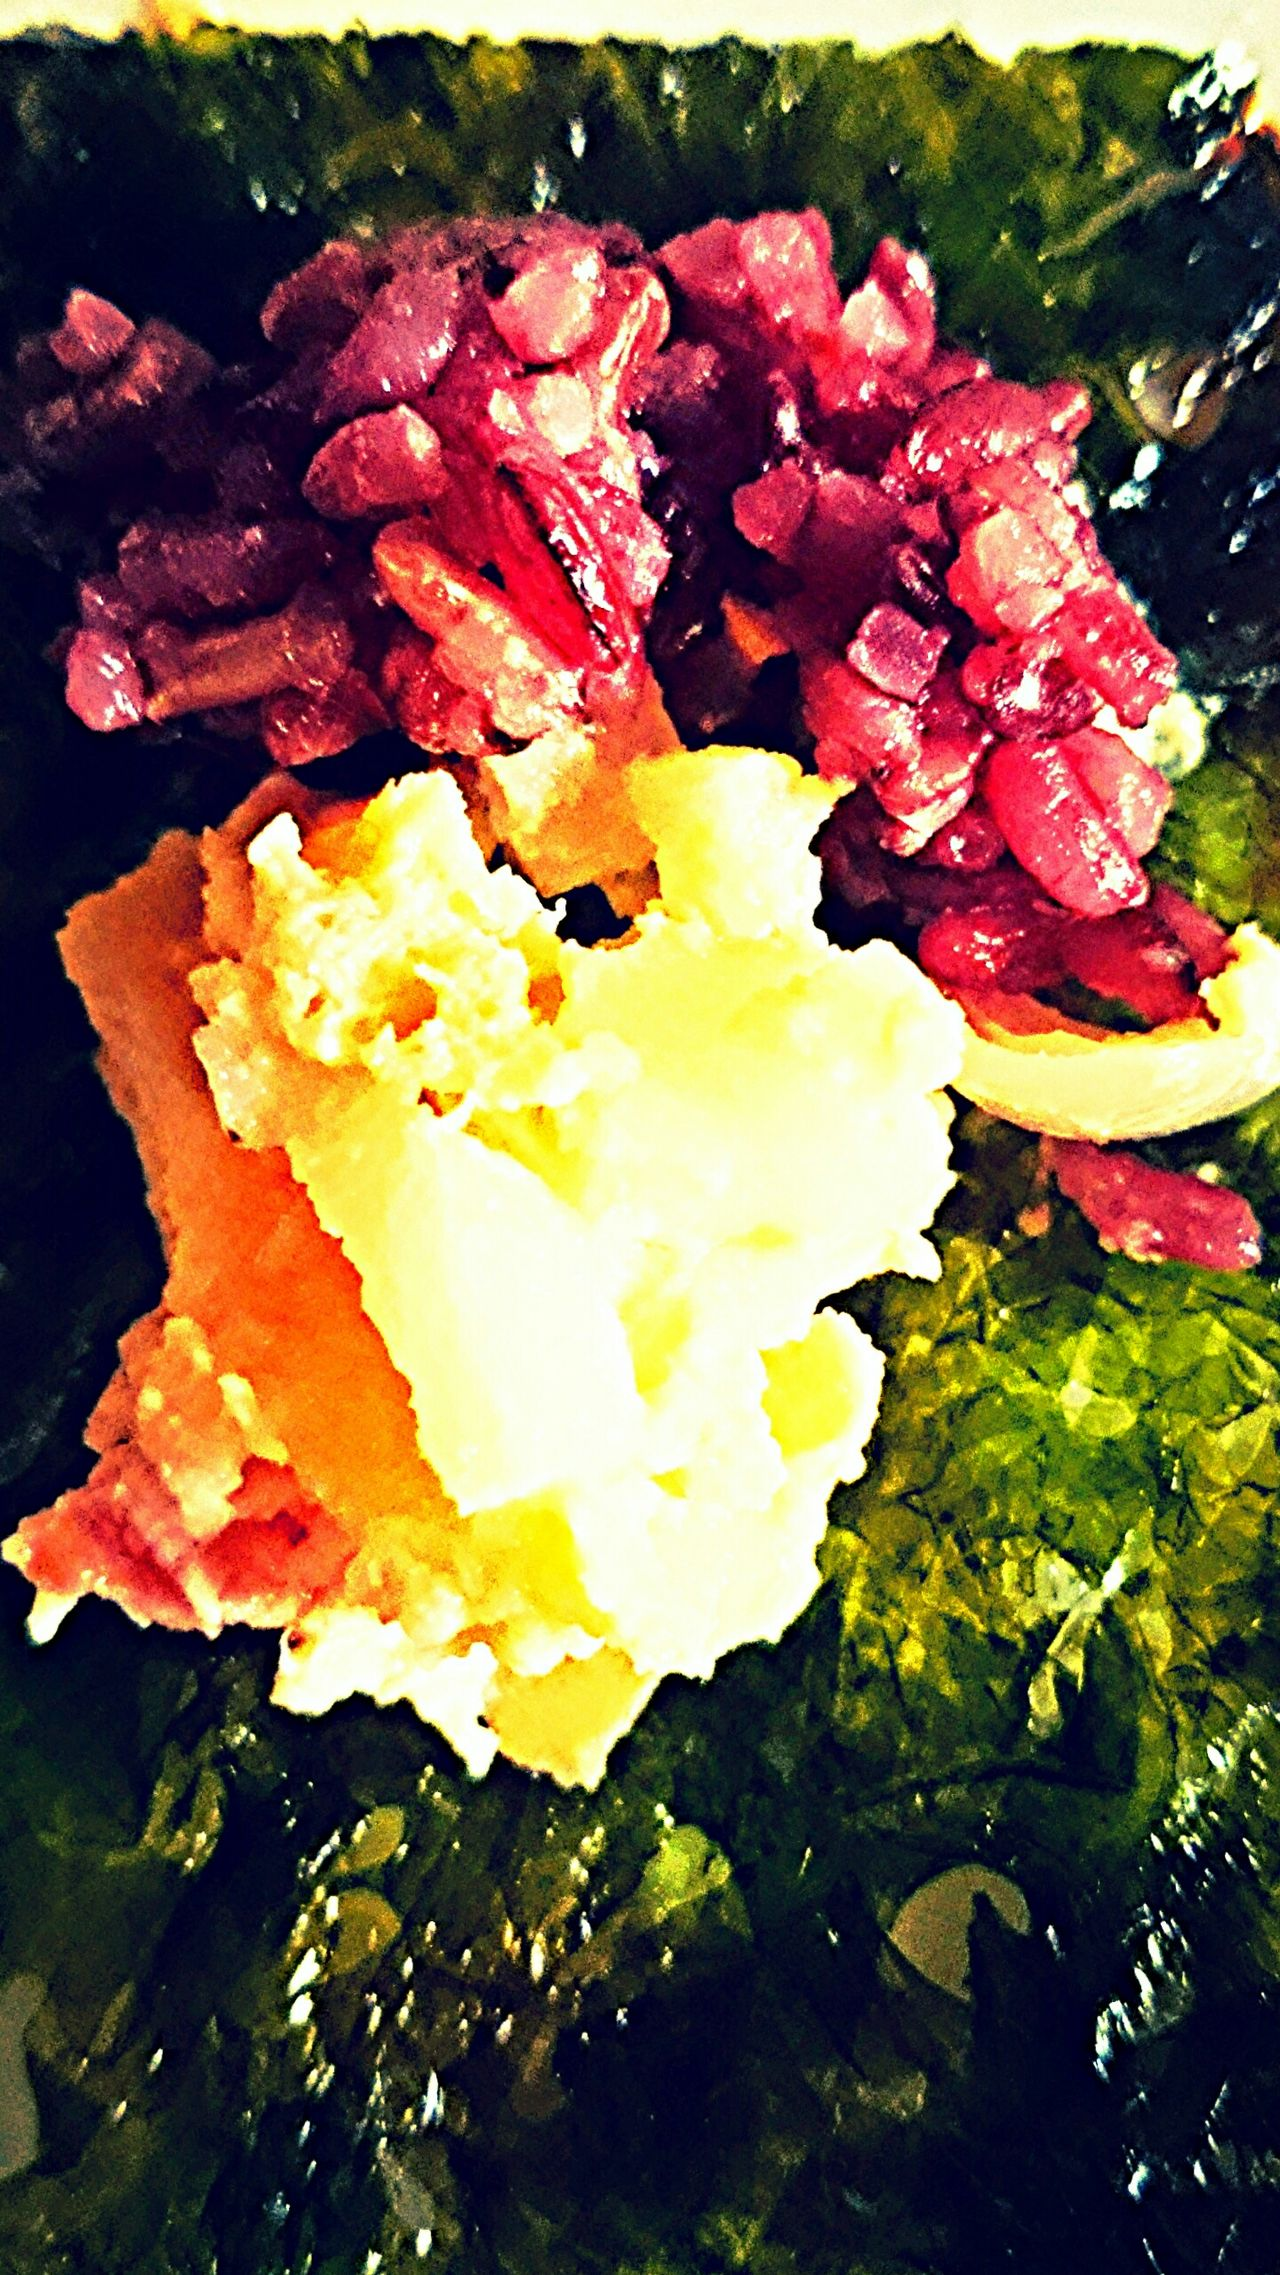 Breakfast Red Rice with Scrumbled Egg With Green Tea Seasoned Laver Food Artjust like a Face Of A Woman Sideview Part Burp!! :)